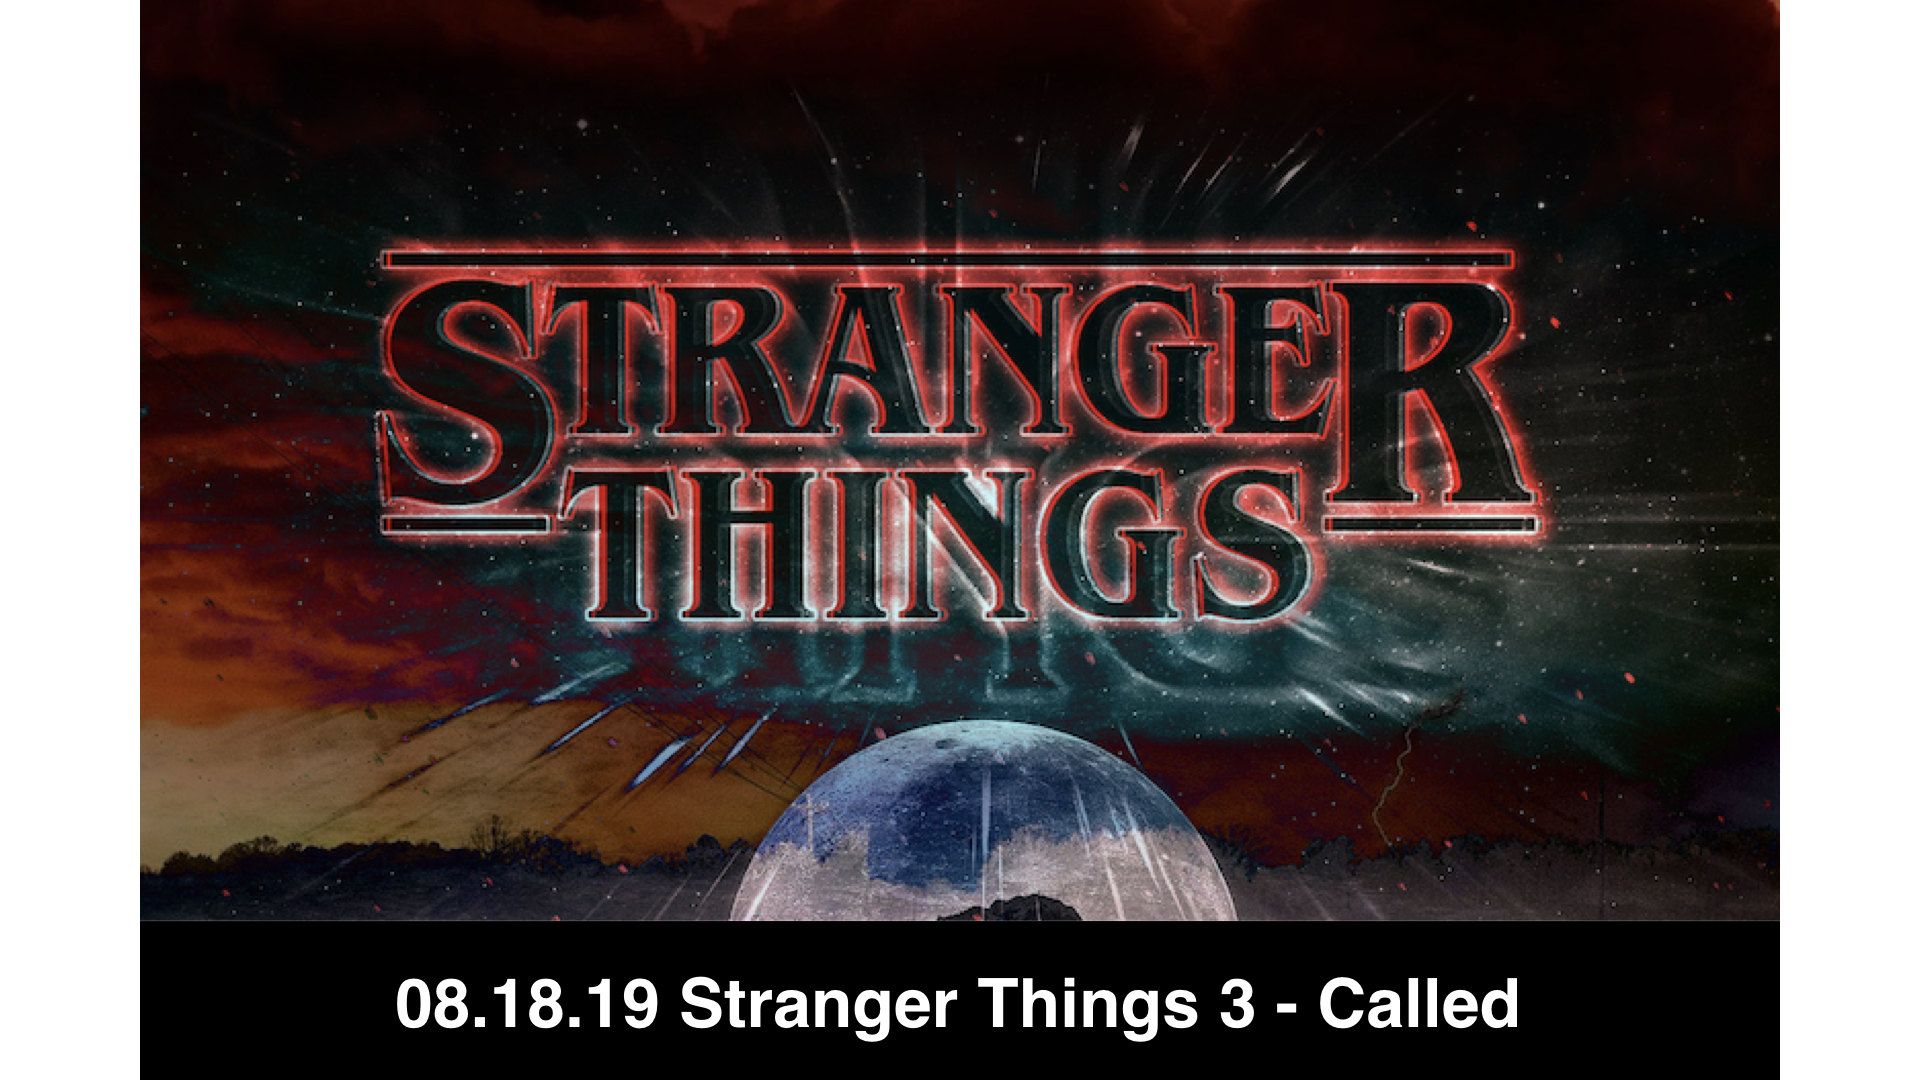 08.18.19 Stranger Things 3 - Called